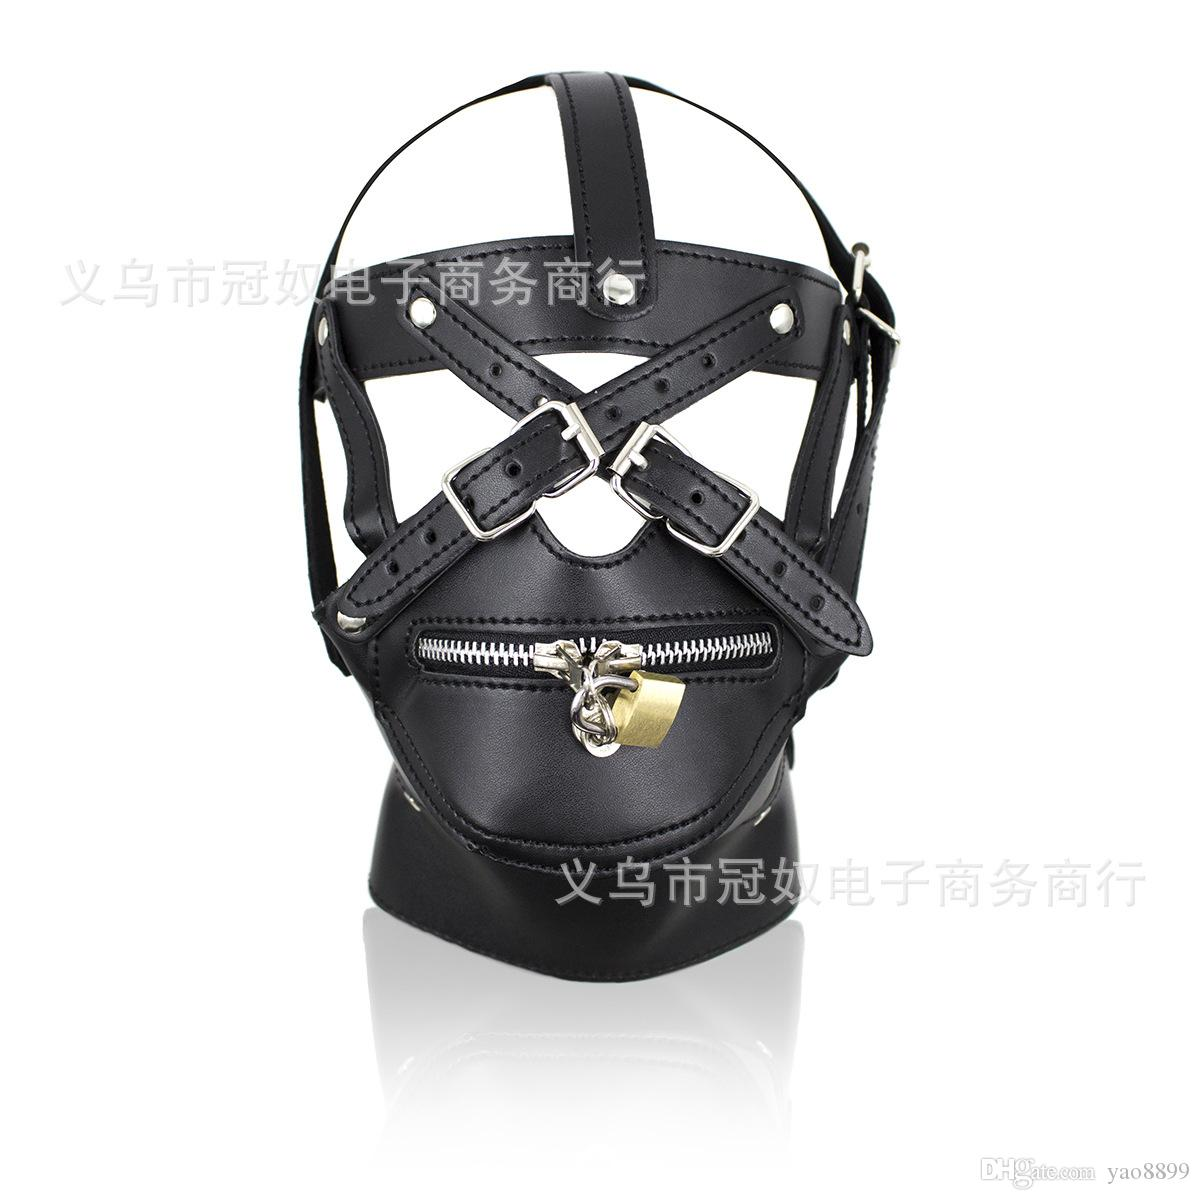 BDSM Sex Toys Black Leather Head Harness With Muzzle Leather Muzzle Bondage Restraint Gear Adult Sex Product S778